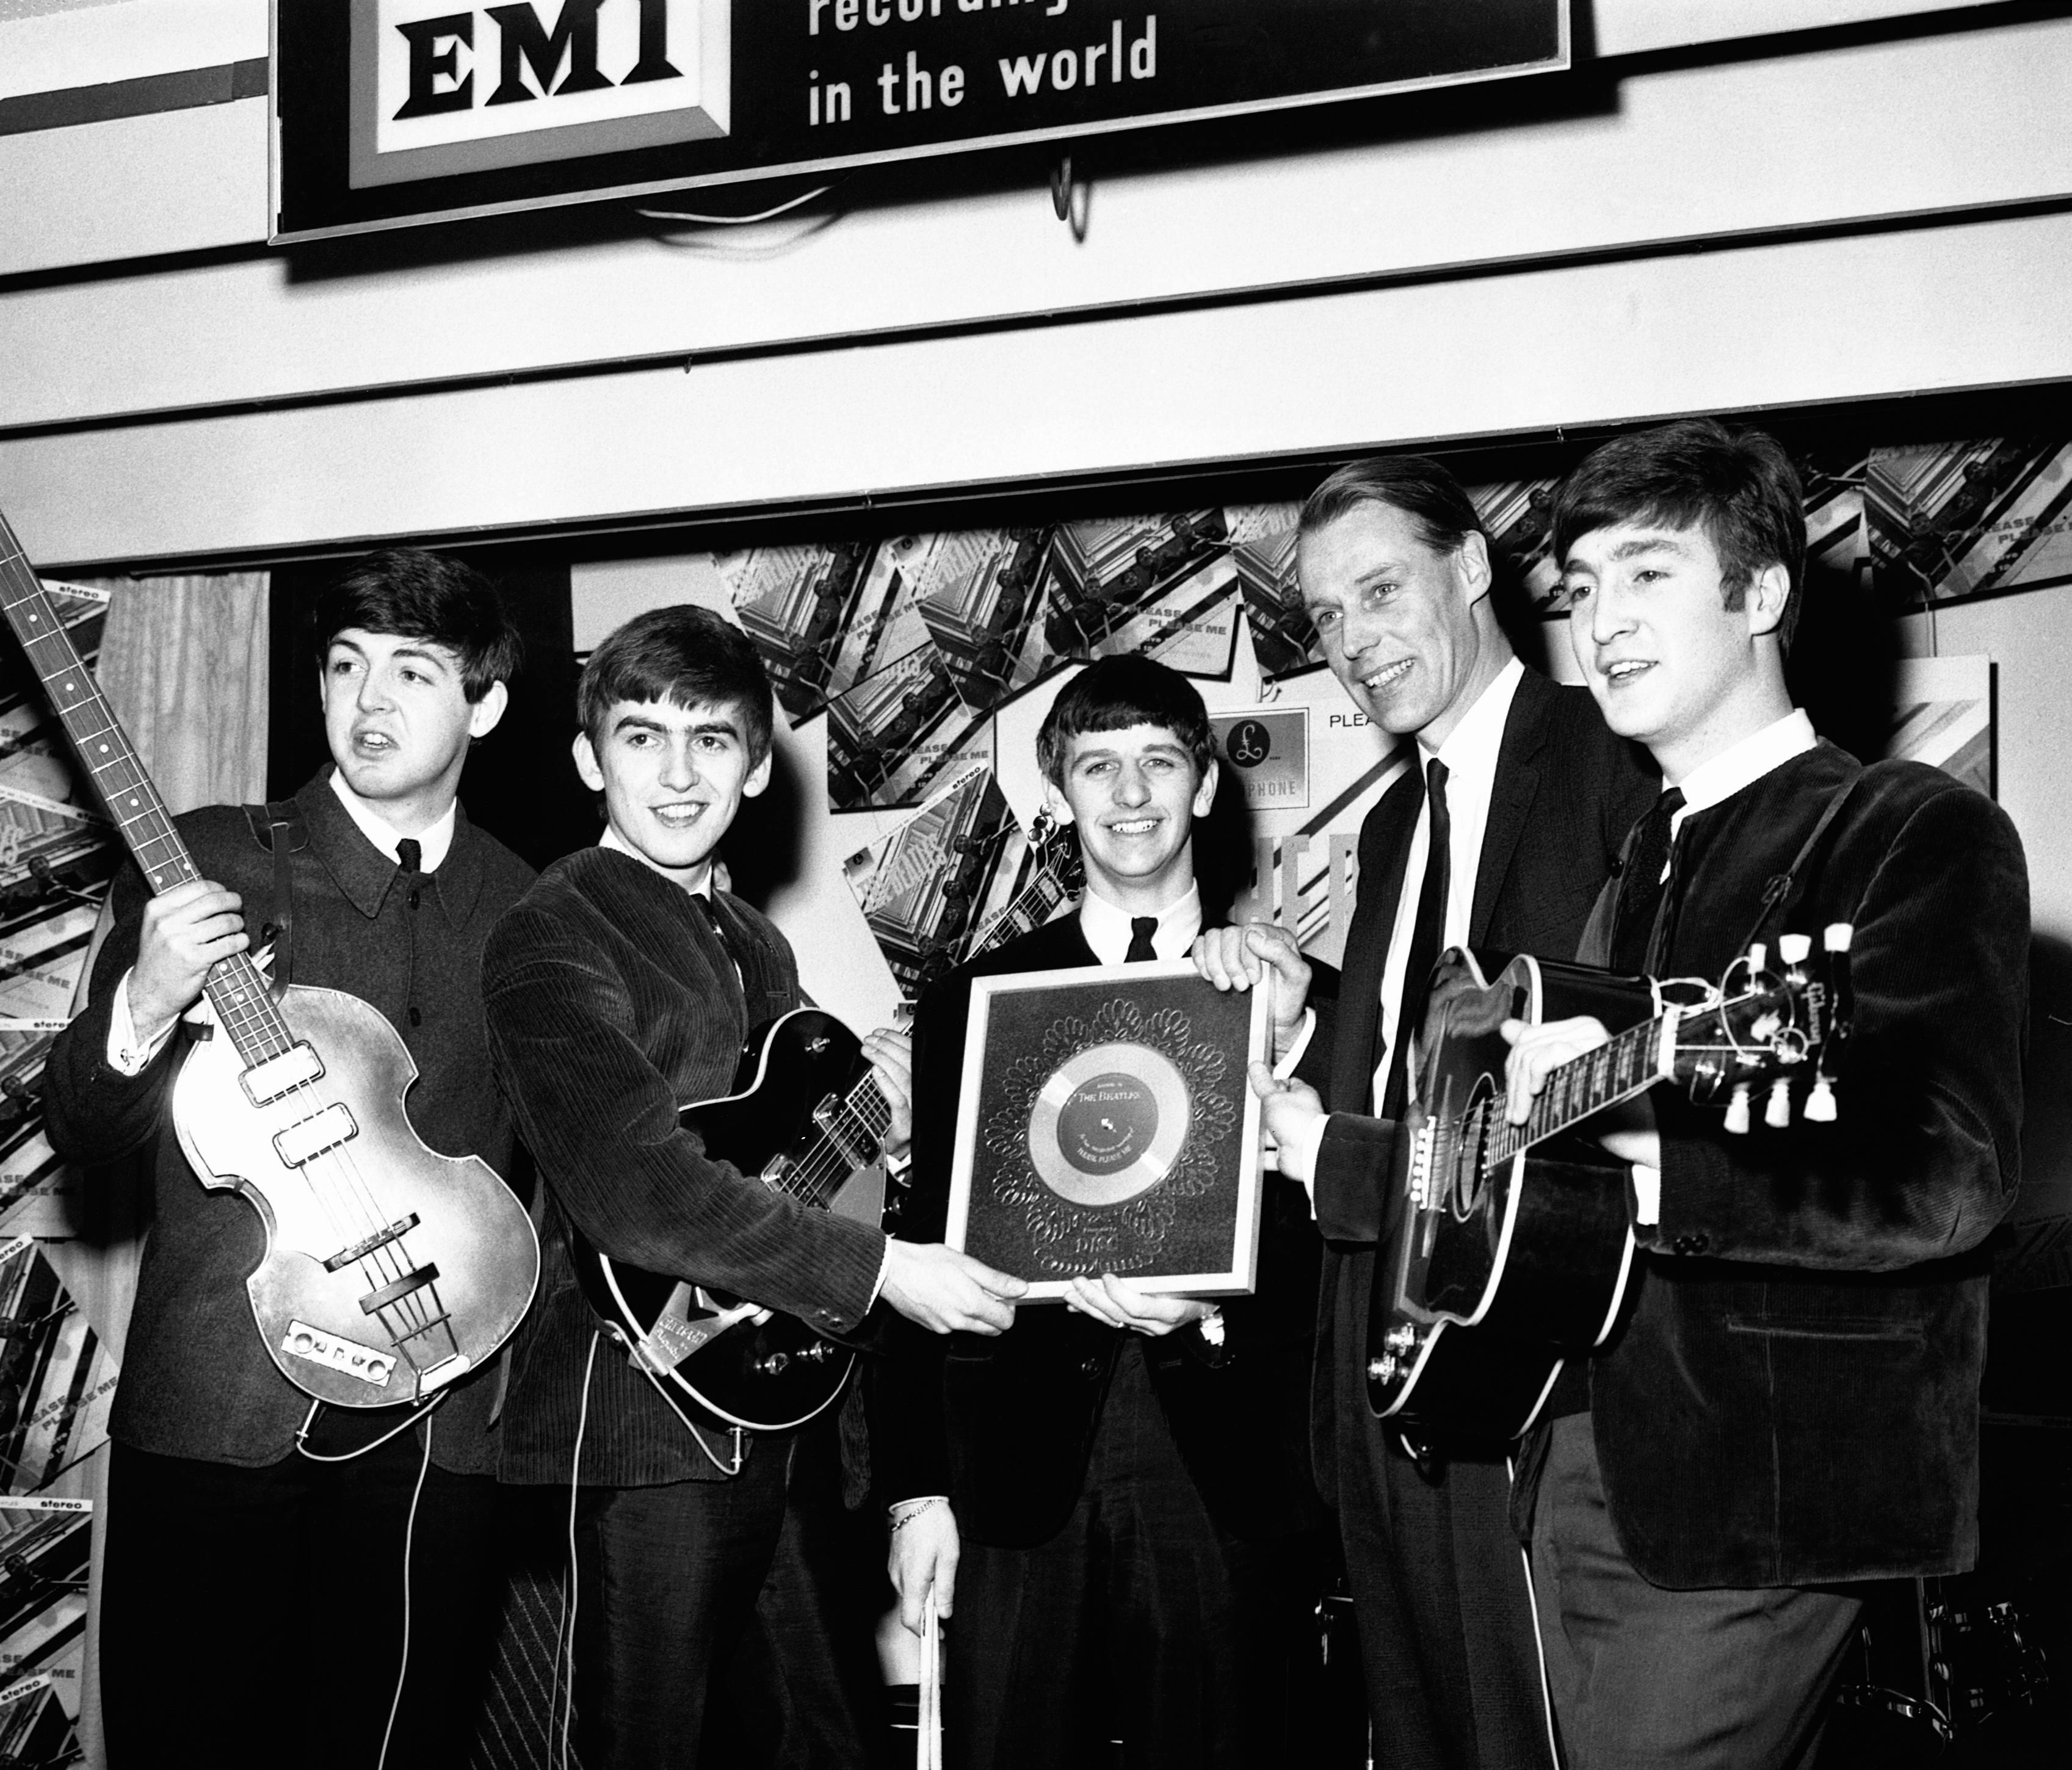 Beatles apparently influential - 2019 year